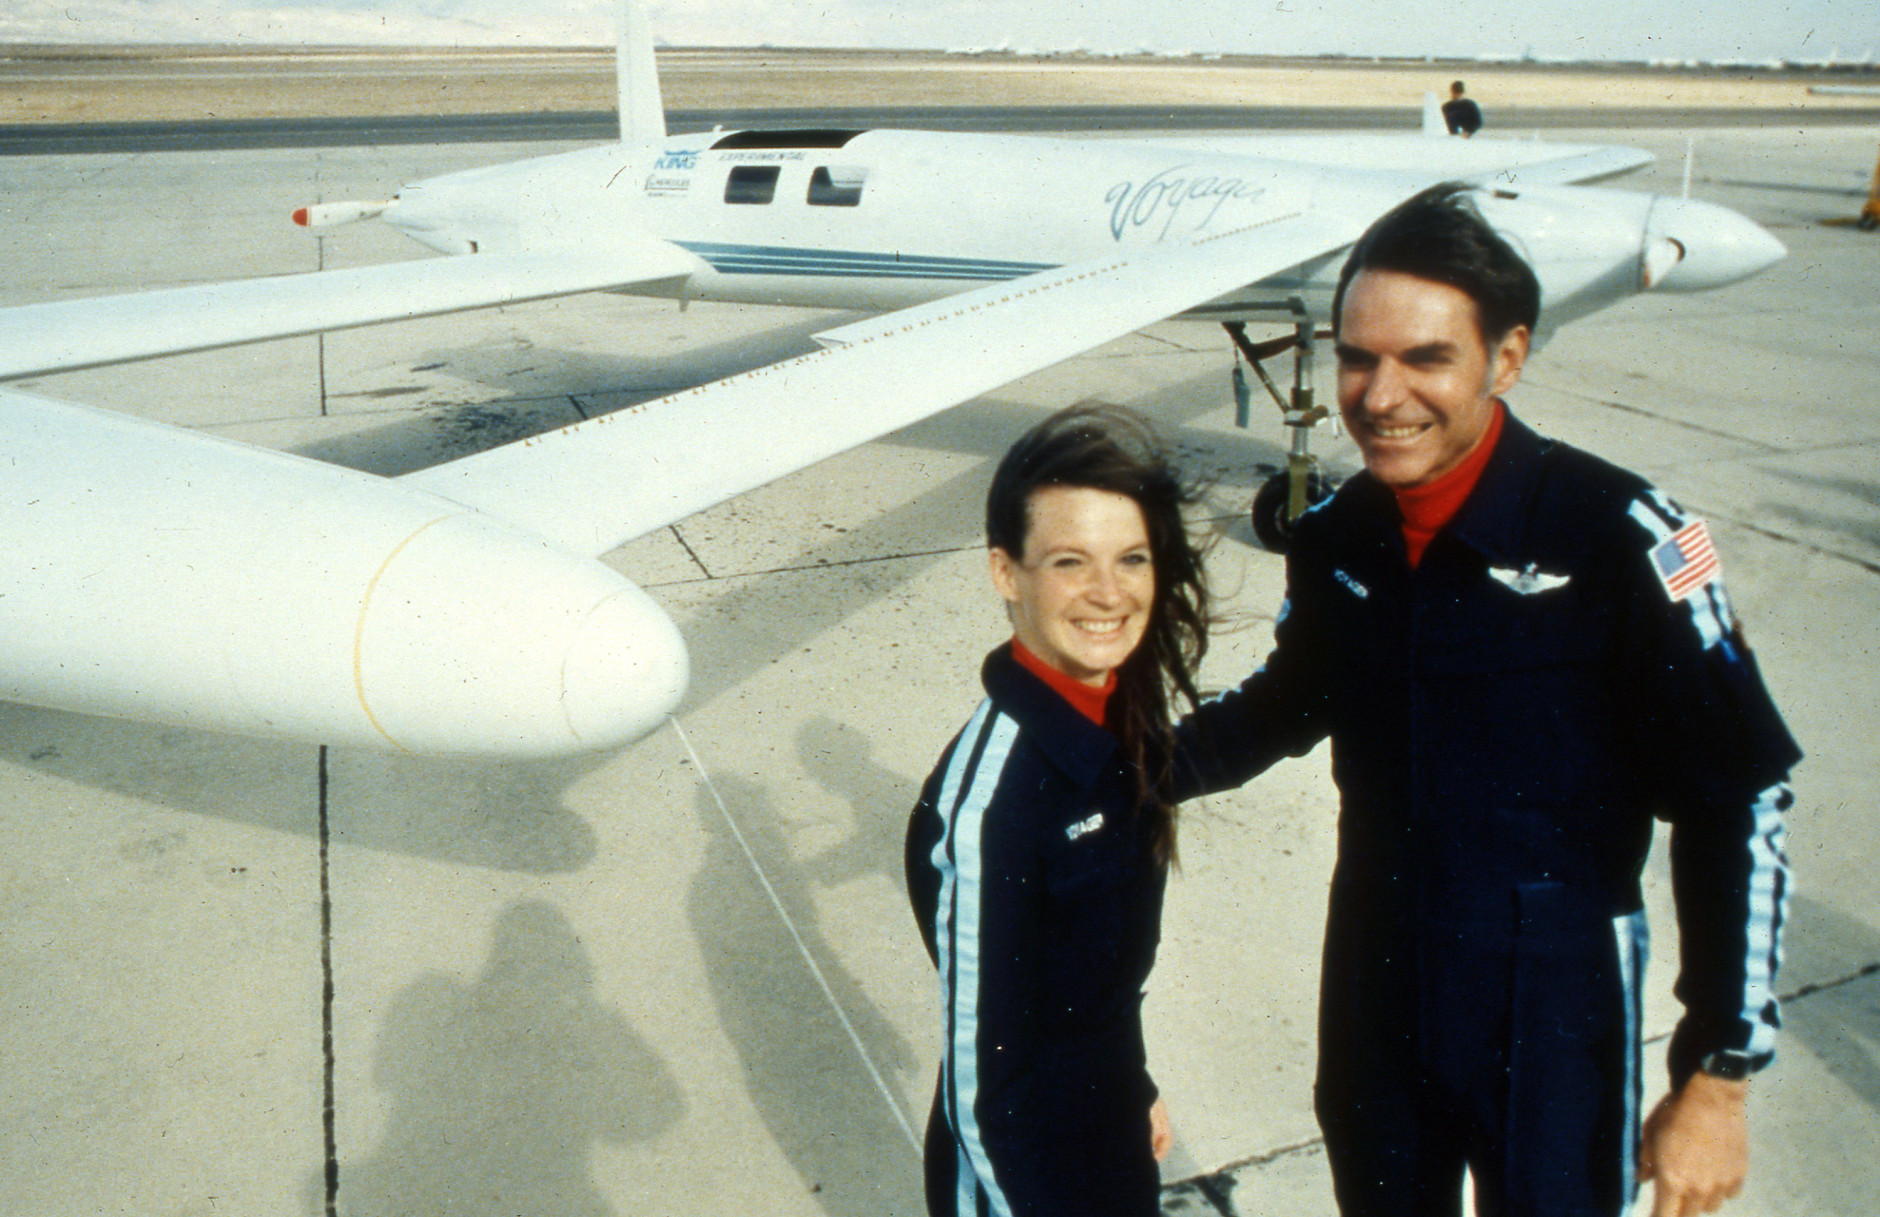 Co-pilots Dick Rutan and Jeana Yeager, left, (no relationship to test pilot Chuck Yeager), will attempt to circumnavigate the globe without refuelling in an experimental aircraft called Voyager. Photo was taken after a test flight over the Mojave Desert December 19, 1985. The aircraft is made of plastic and graphite fiber composite and able to carry five-times its own weight in fuel, was designed by Rutan's brother, Burt, and is so economical that it can complete the 25 000 mile (40 250 km) flight along the equator in about 12 days with fuel to spare. (AP Photo/Doug Pizac)